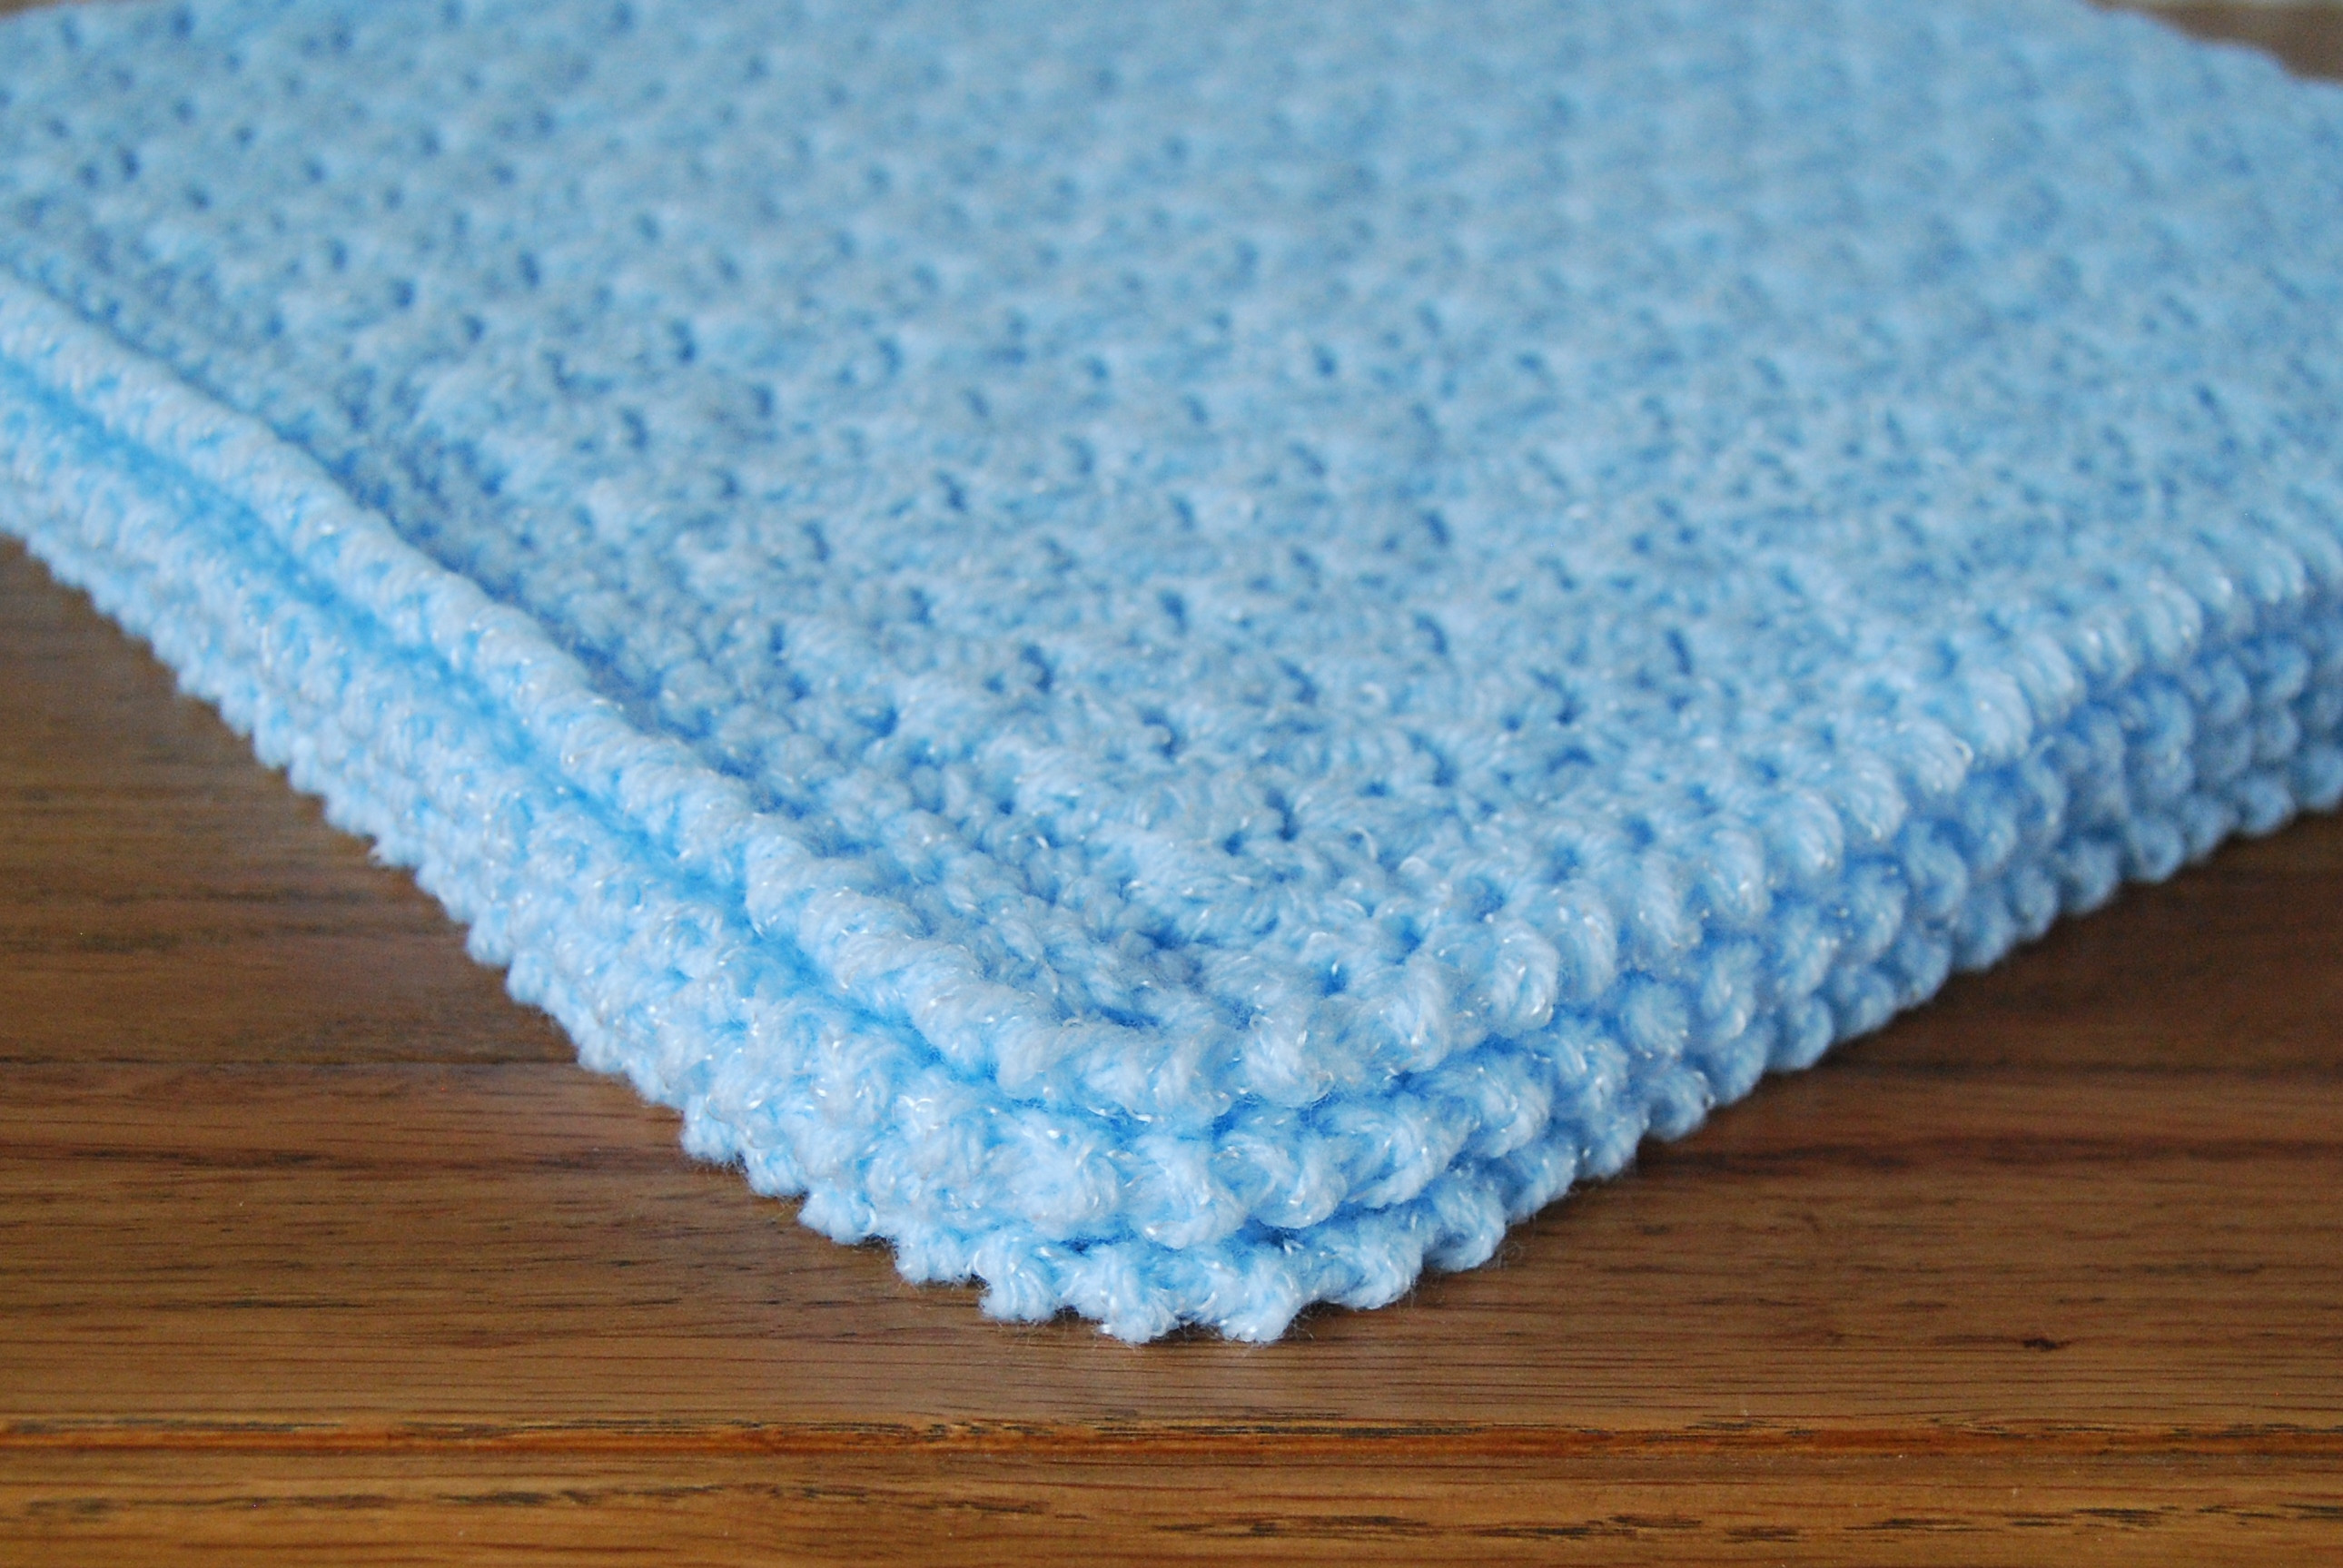 Baby Boy Crochet Blanket Patterns Lovely Beautiful Baby Boy Blanket Crochet Pattern for Pram Of Baby Boy Crochet Blanket Patterns Luxury Baby Blanket with Cabled Border Crochet Pattern